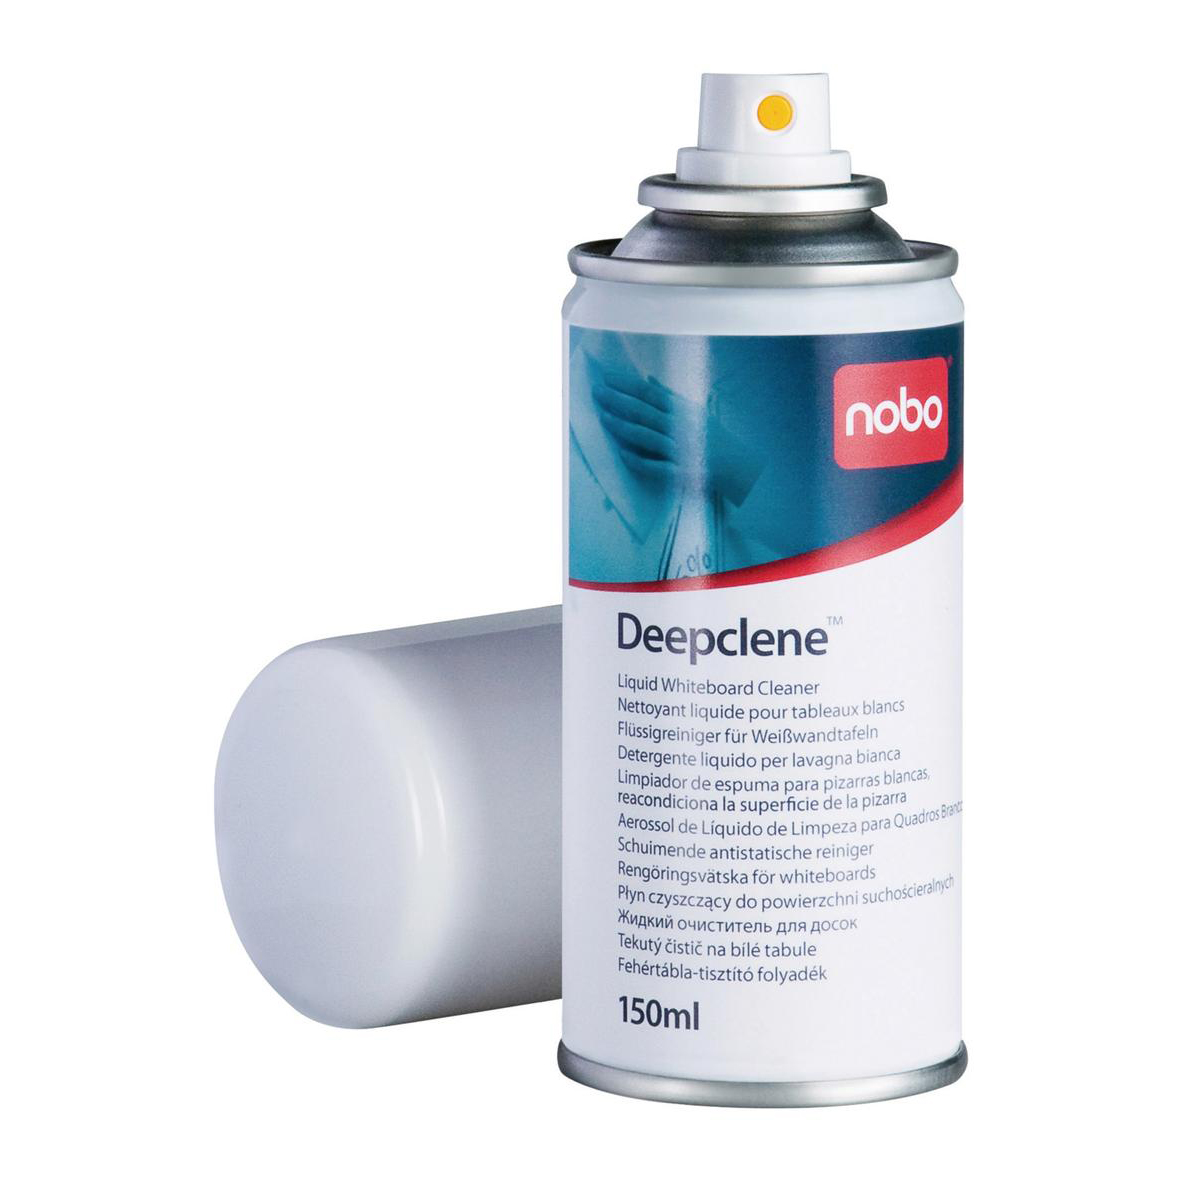 Cleaning / Erasing Nobo Deepclene Whiteboard Cleaning Fluid Spray 150ml Ref 34533943